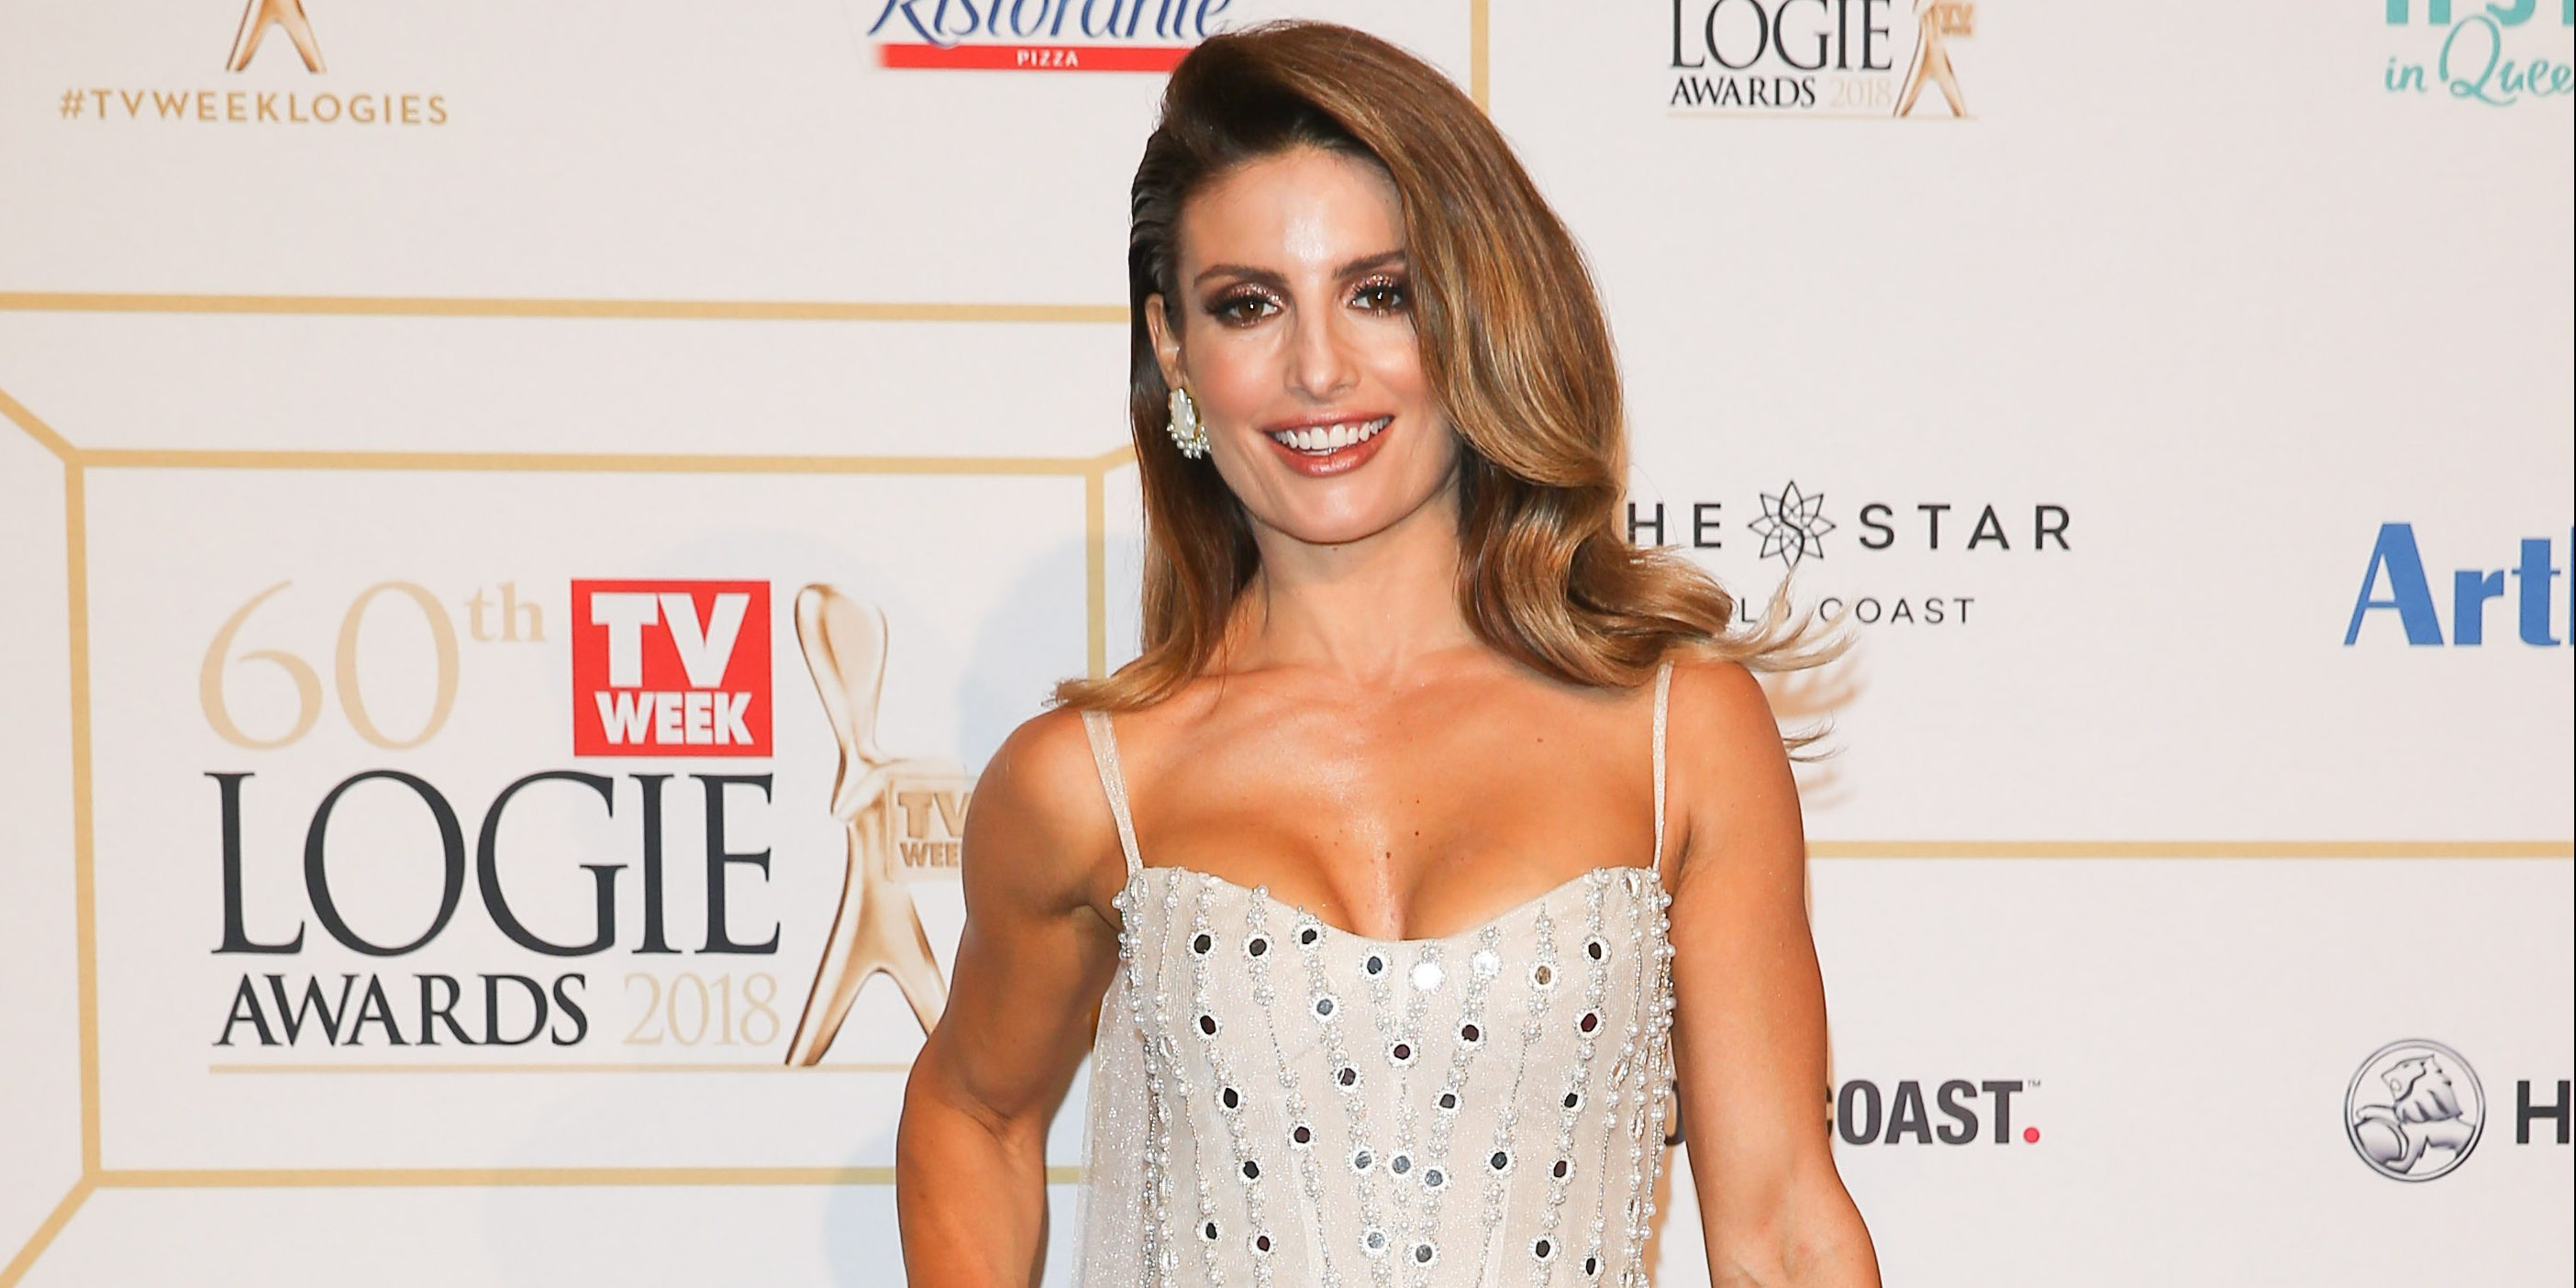 Home and Away: Ada Nicodemou posts stunning bikini picture